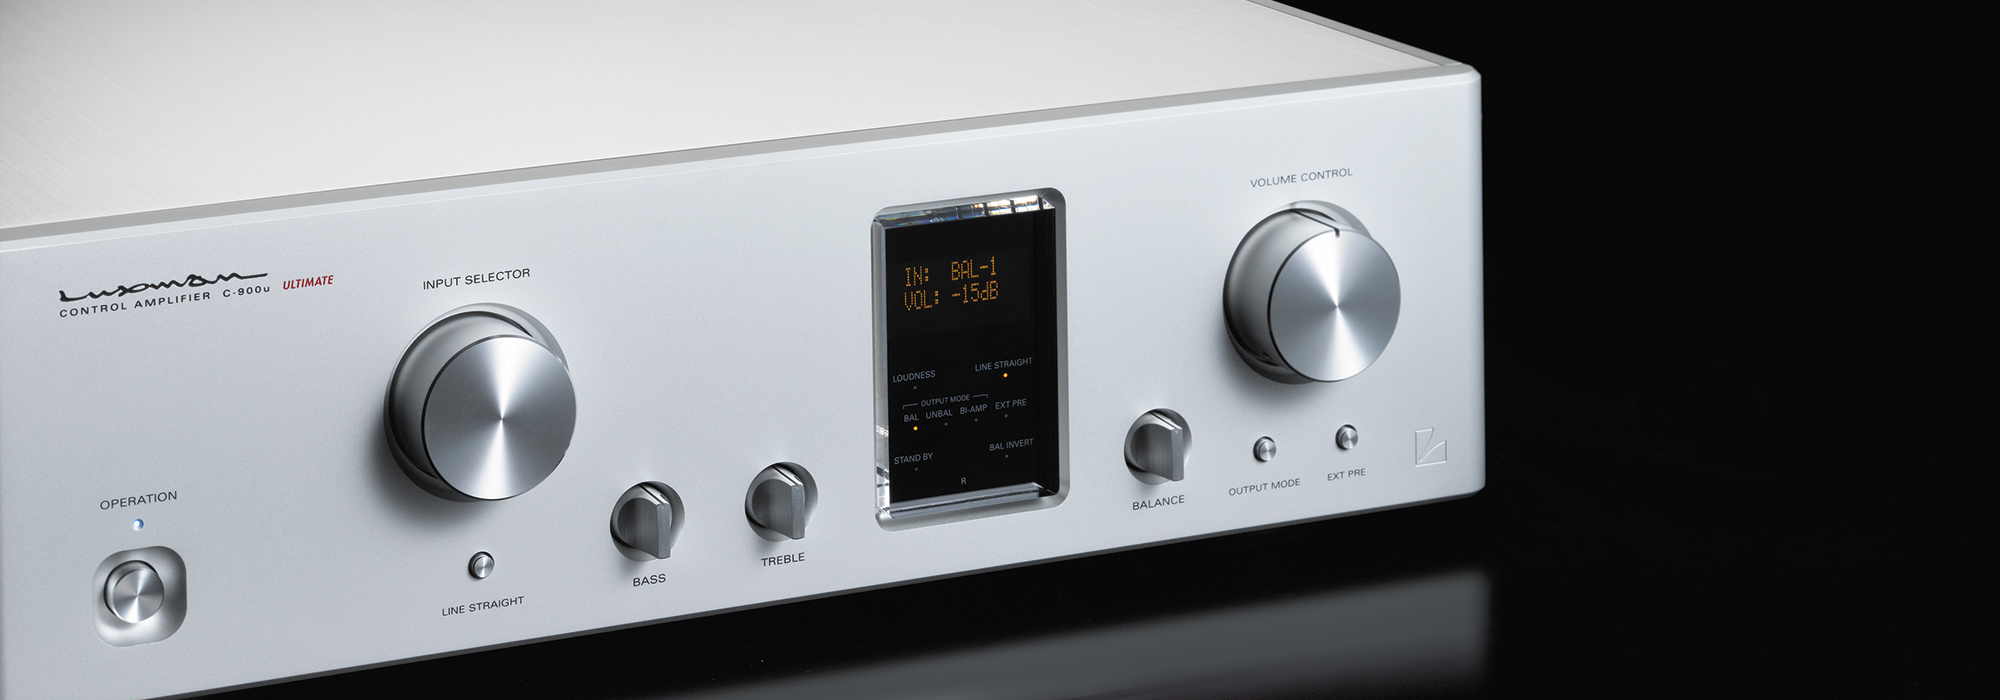 C 900u Control Amplifiers Products Luxman Seeking Higher Inserting A Tone Between Preamp And Power Amp Sound Quality